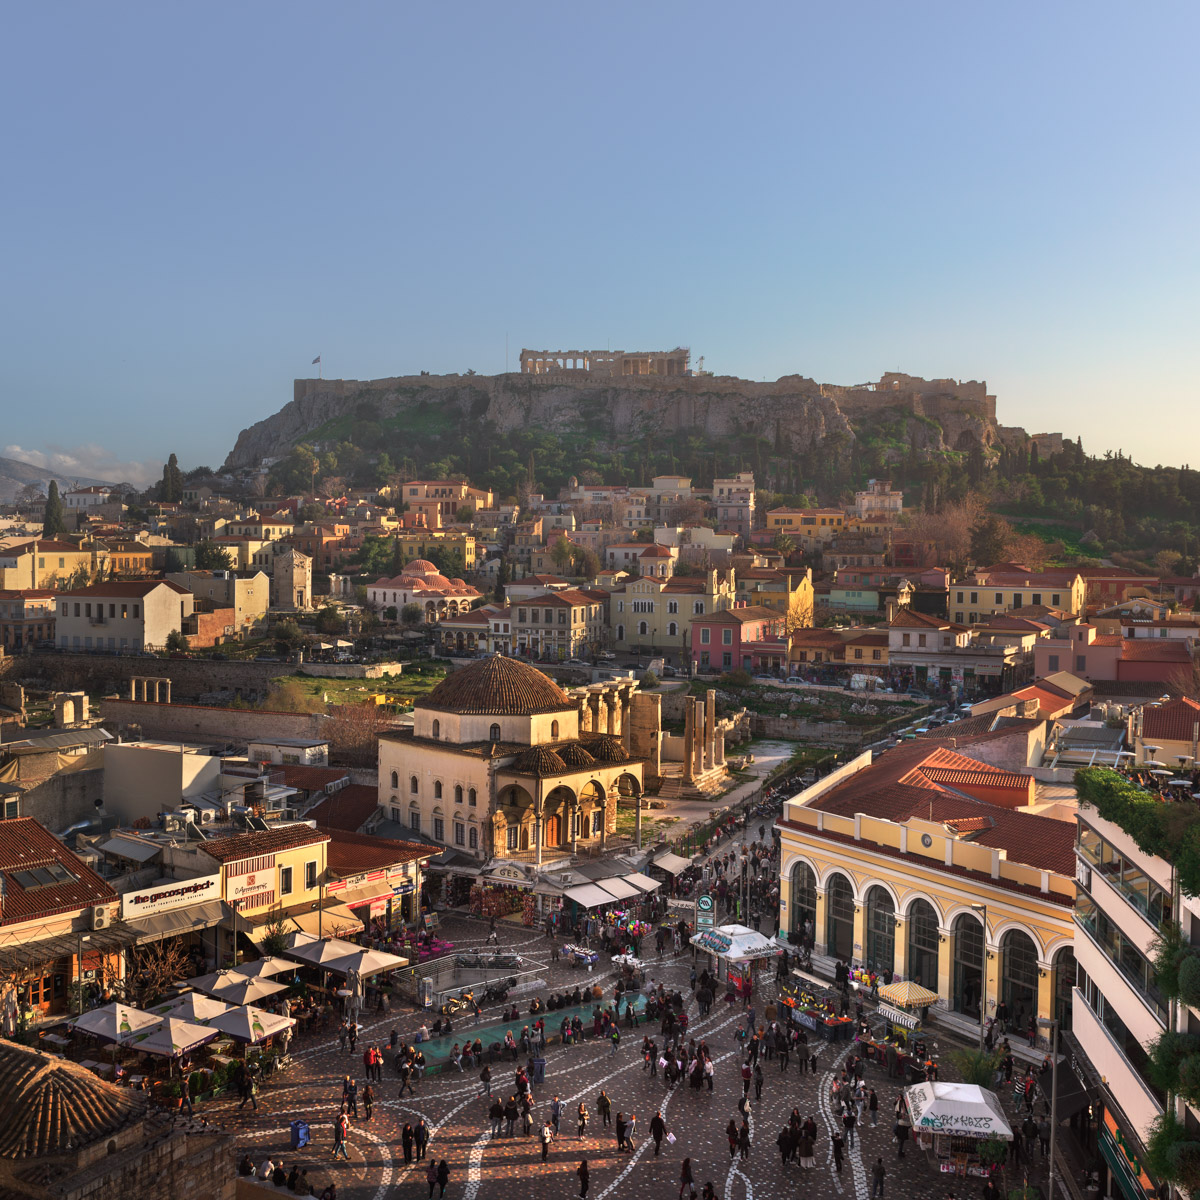 Monastiraki Square and Acropolis, Athens, Greece